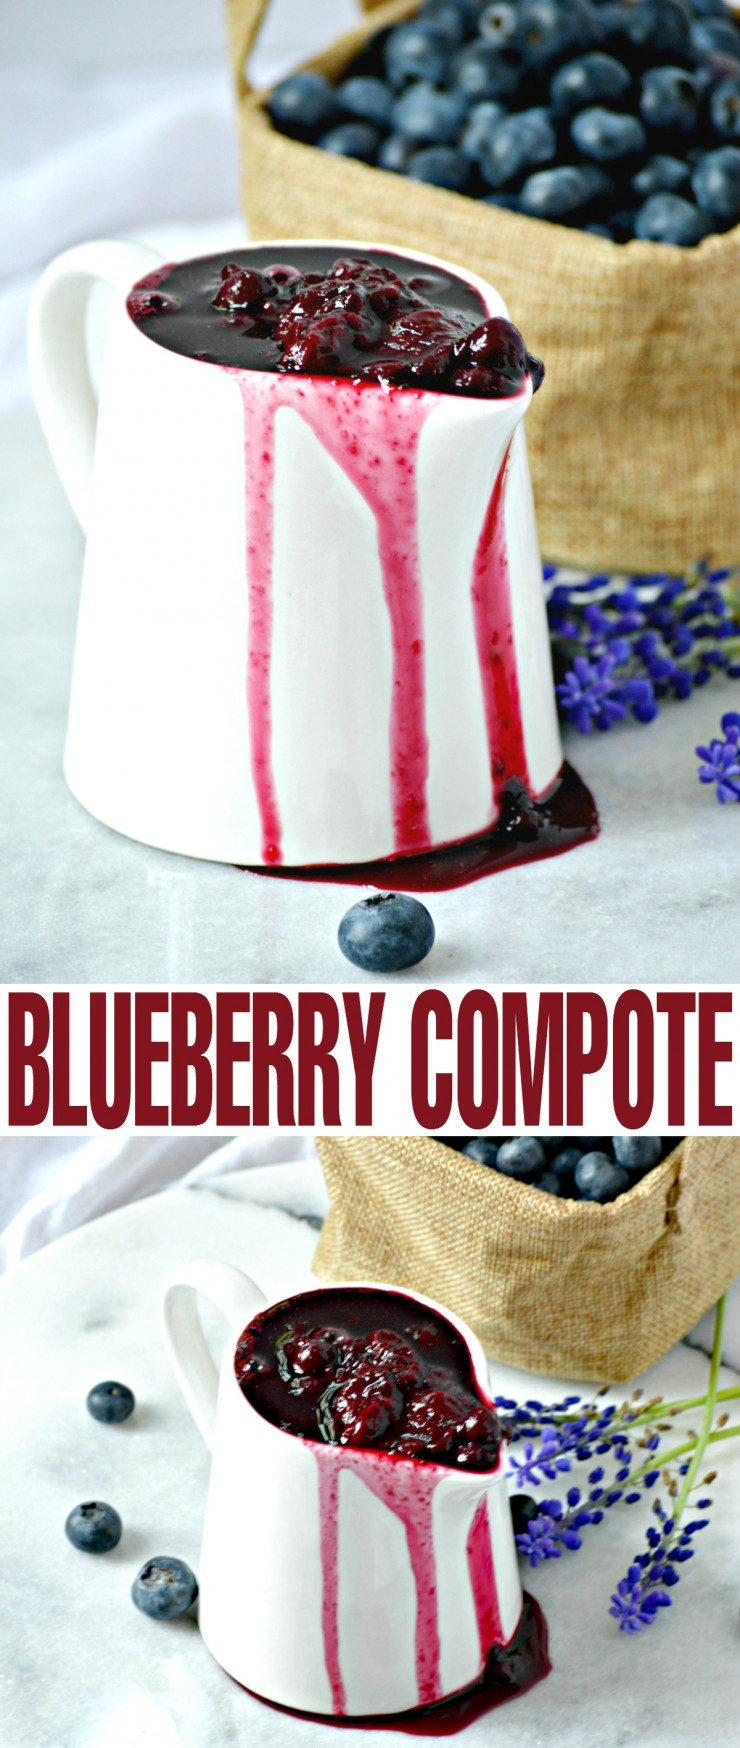 This Blueberry Compote recipe is perfect served over pancakes, ice cream, yoghurt, pound cake, cheesecake. The options are as endless as they are delicious!